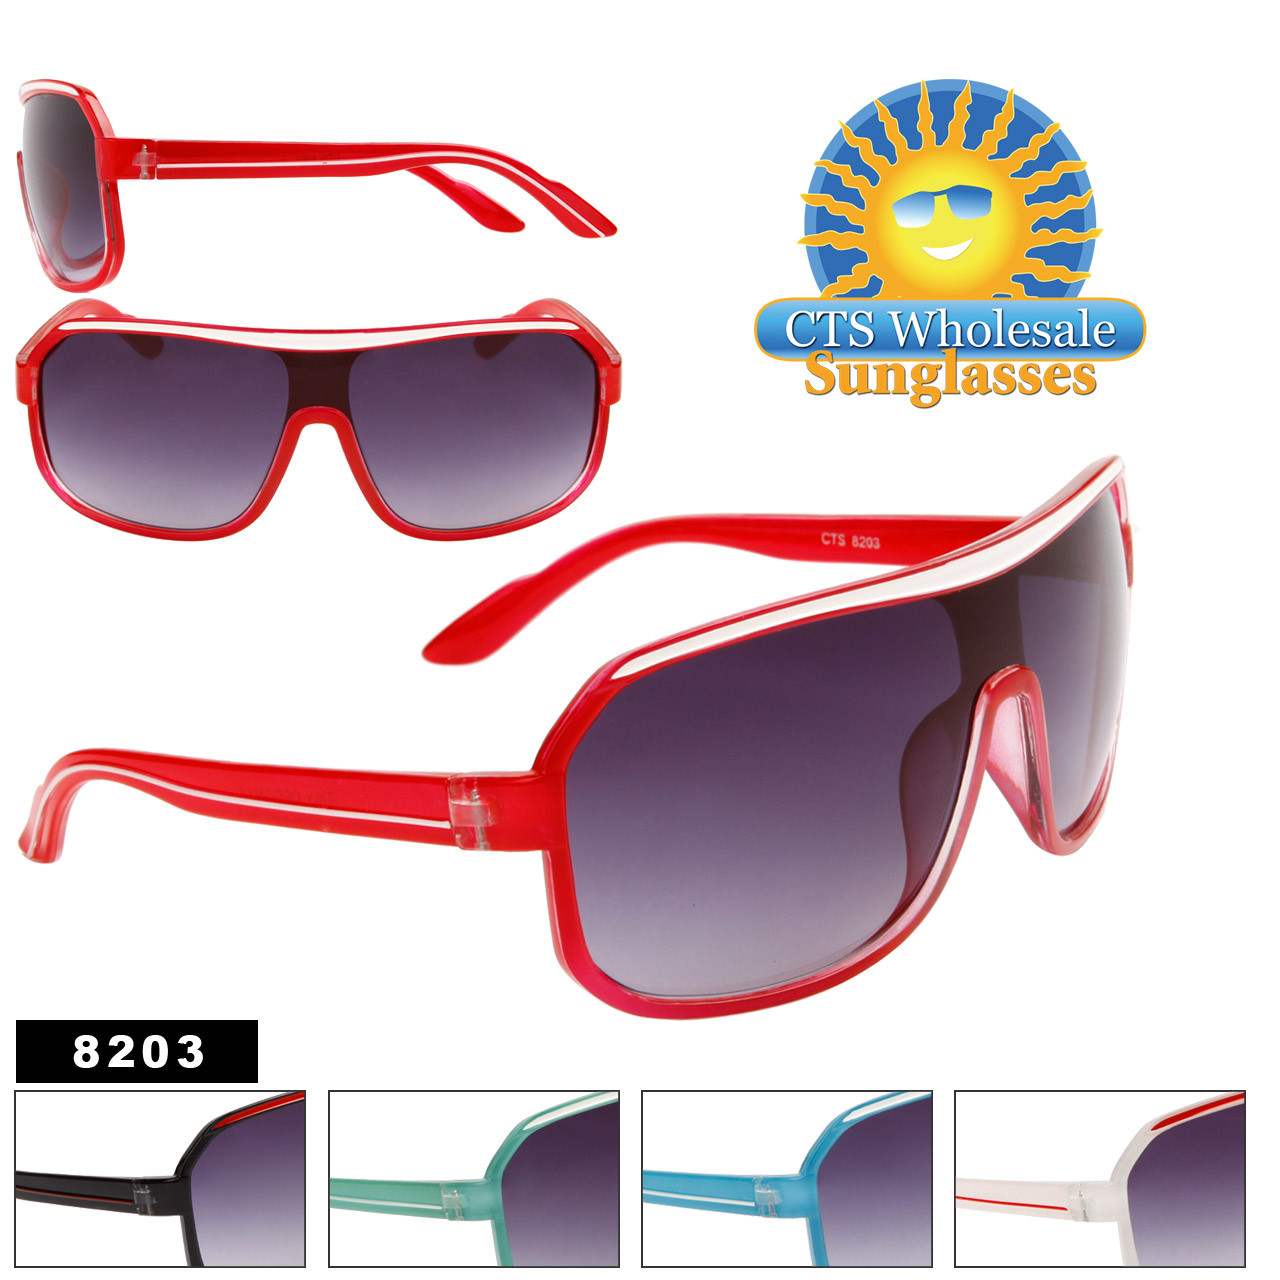 Wholesale Sunglasses 8203